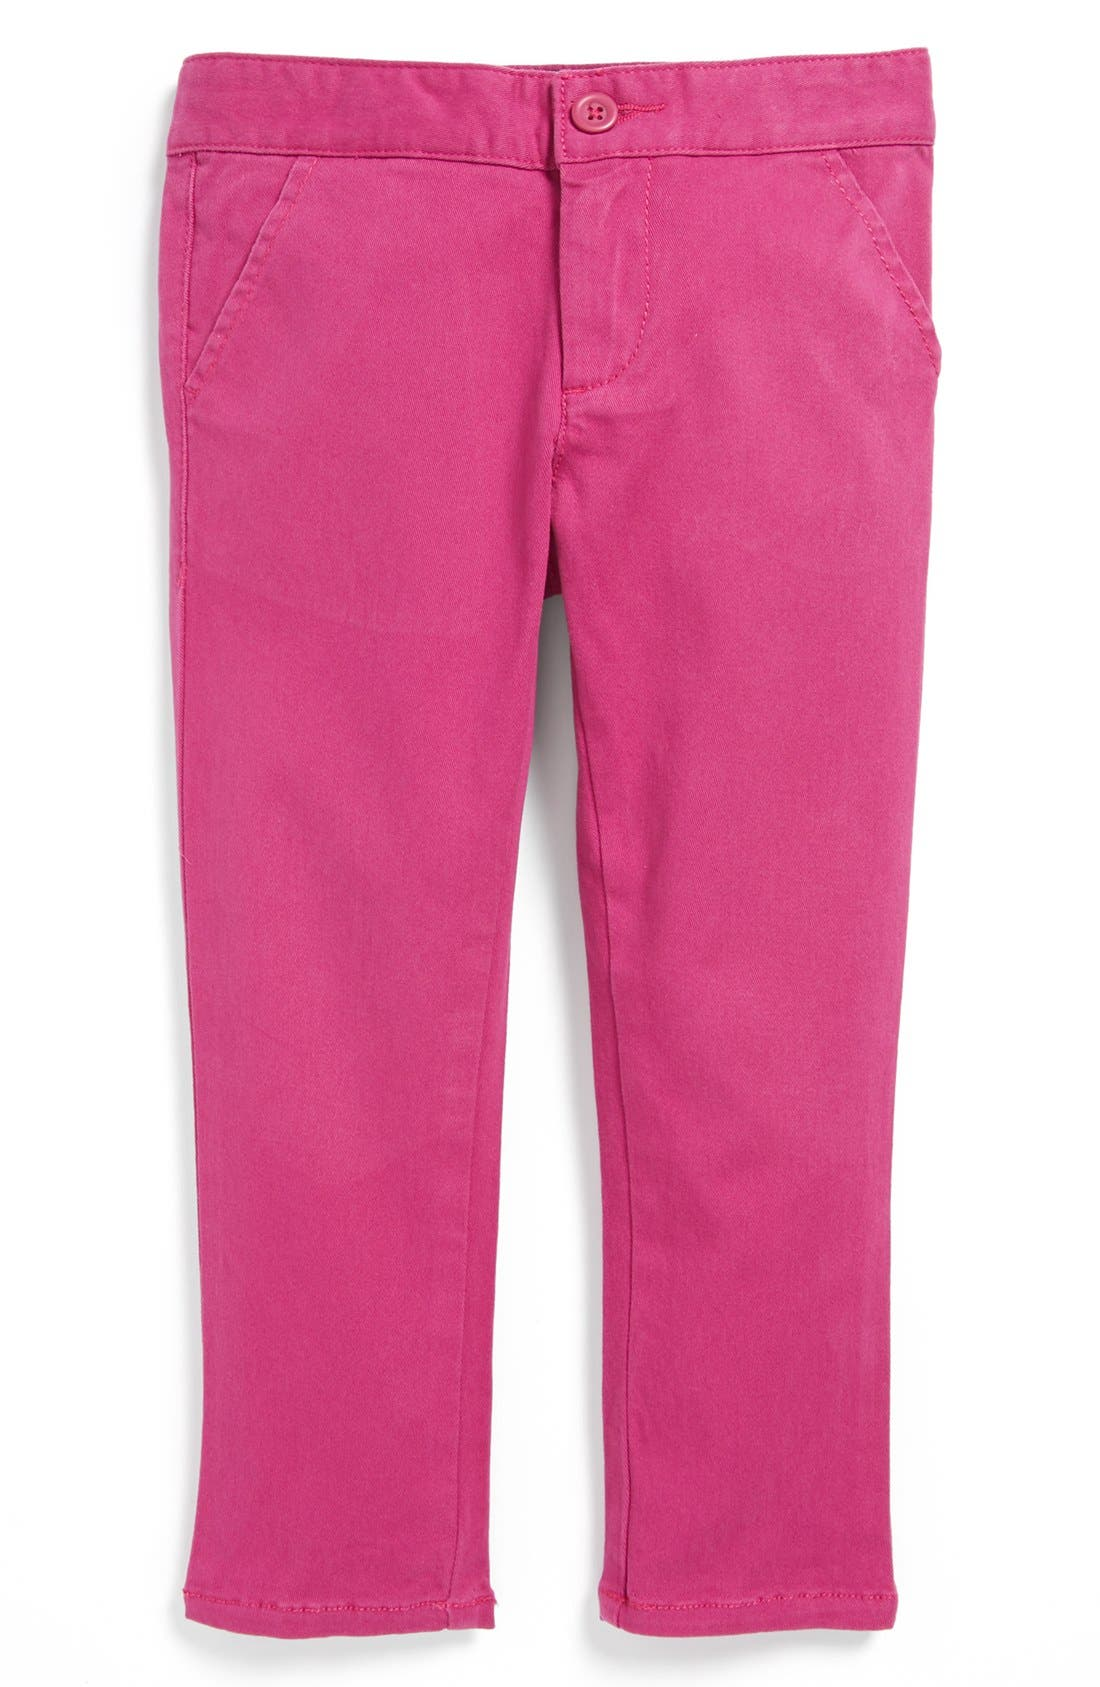 Main Image - Tea Collection Stretch Twill Pants (Toddler Girls)